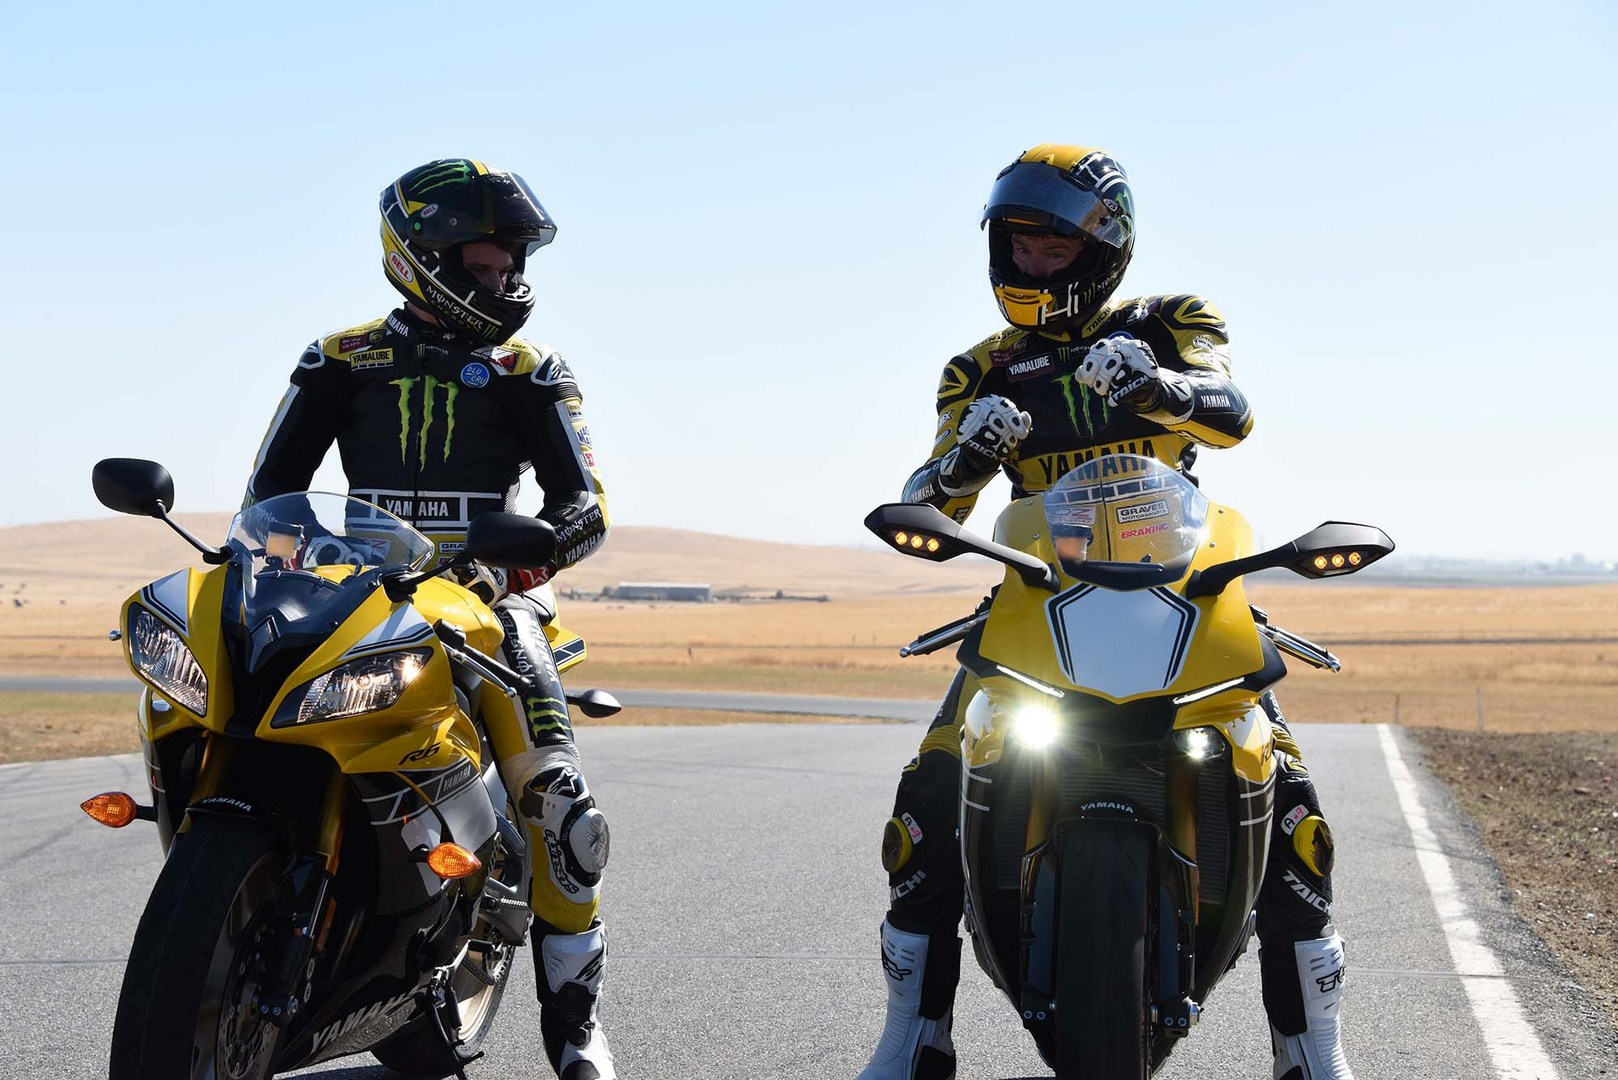 Yamaha Yzf R6 And Super Tenere Available In 60th Anniversary Livery Autoevolution